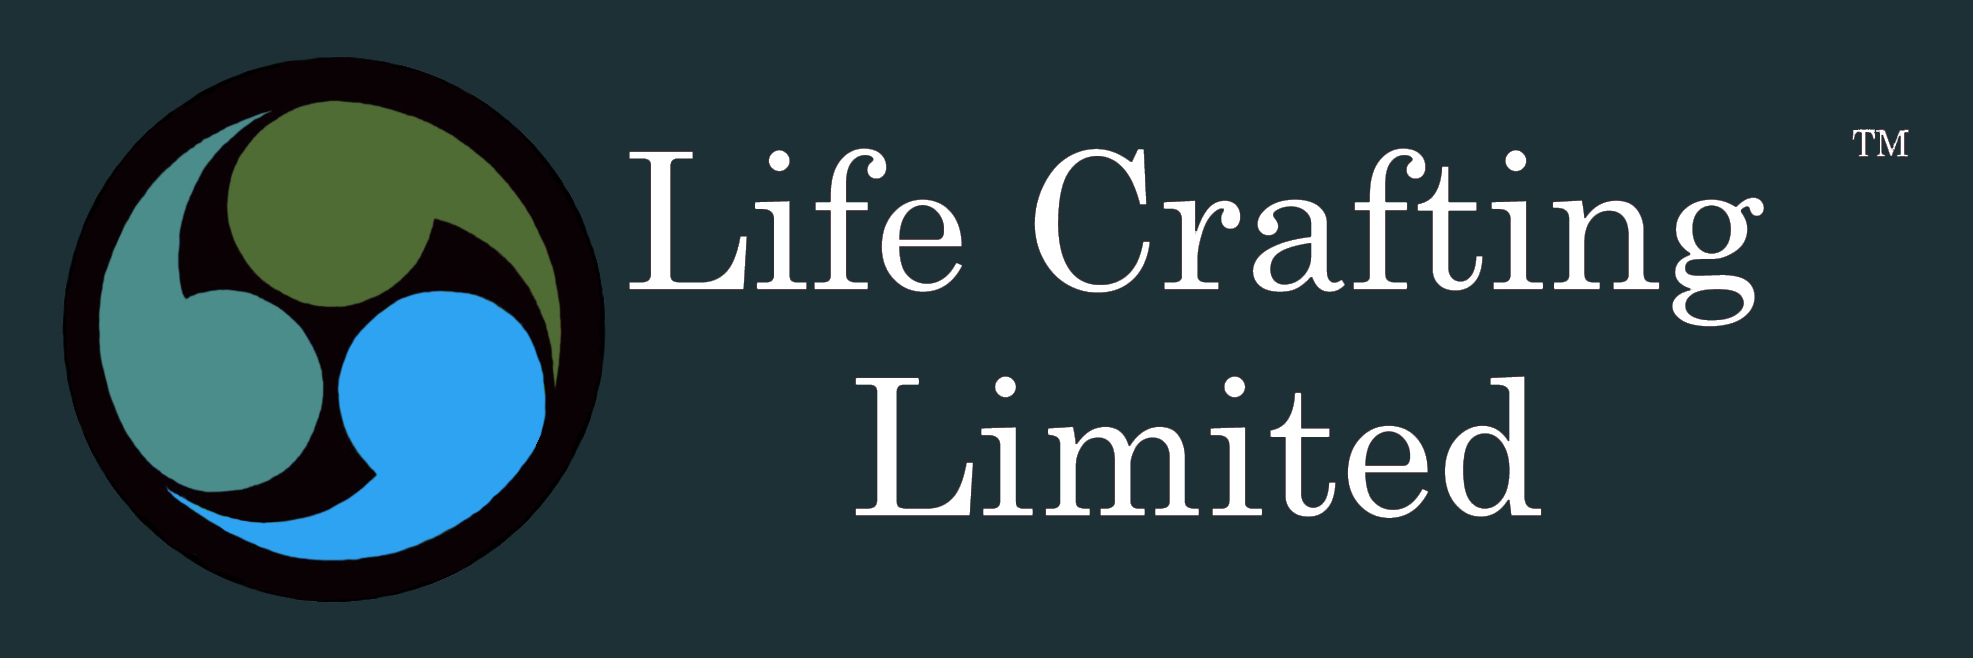 Life Crafting Limited